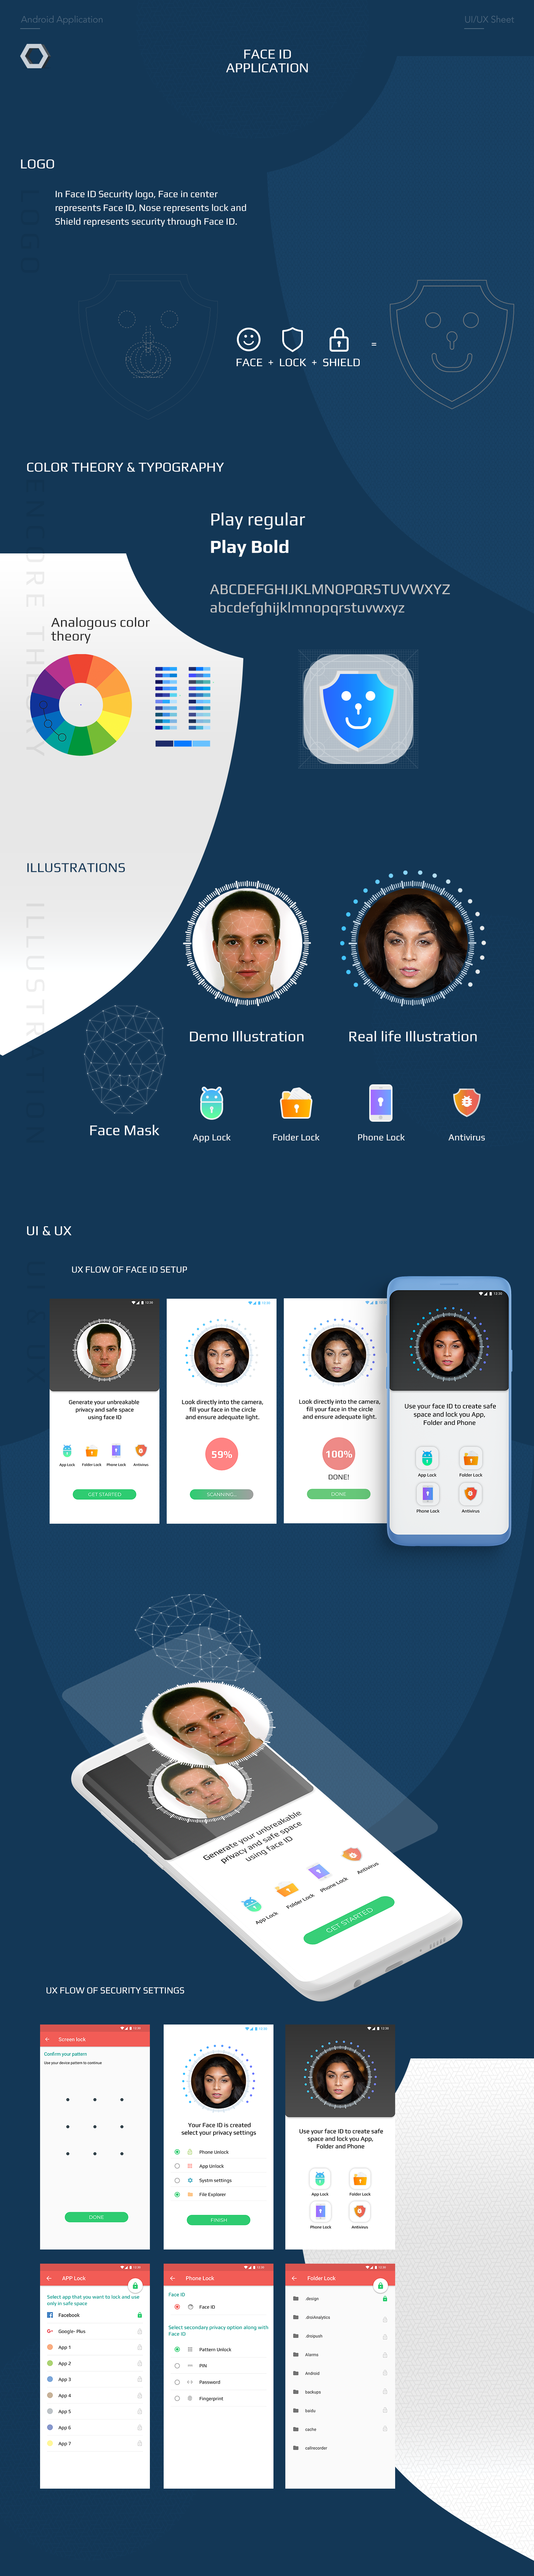 Face ID and Security App UI XD Freebie